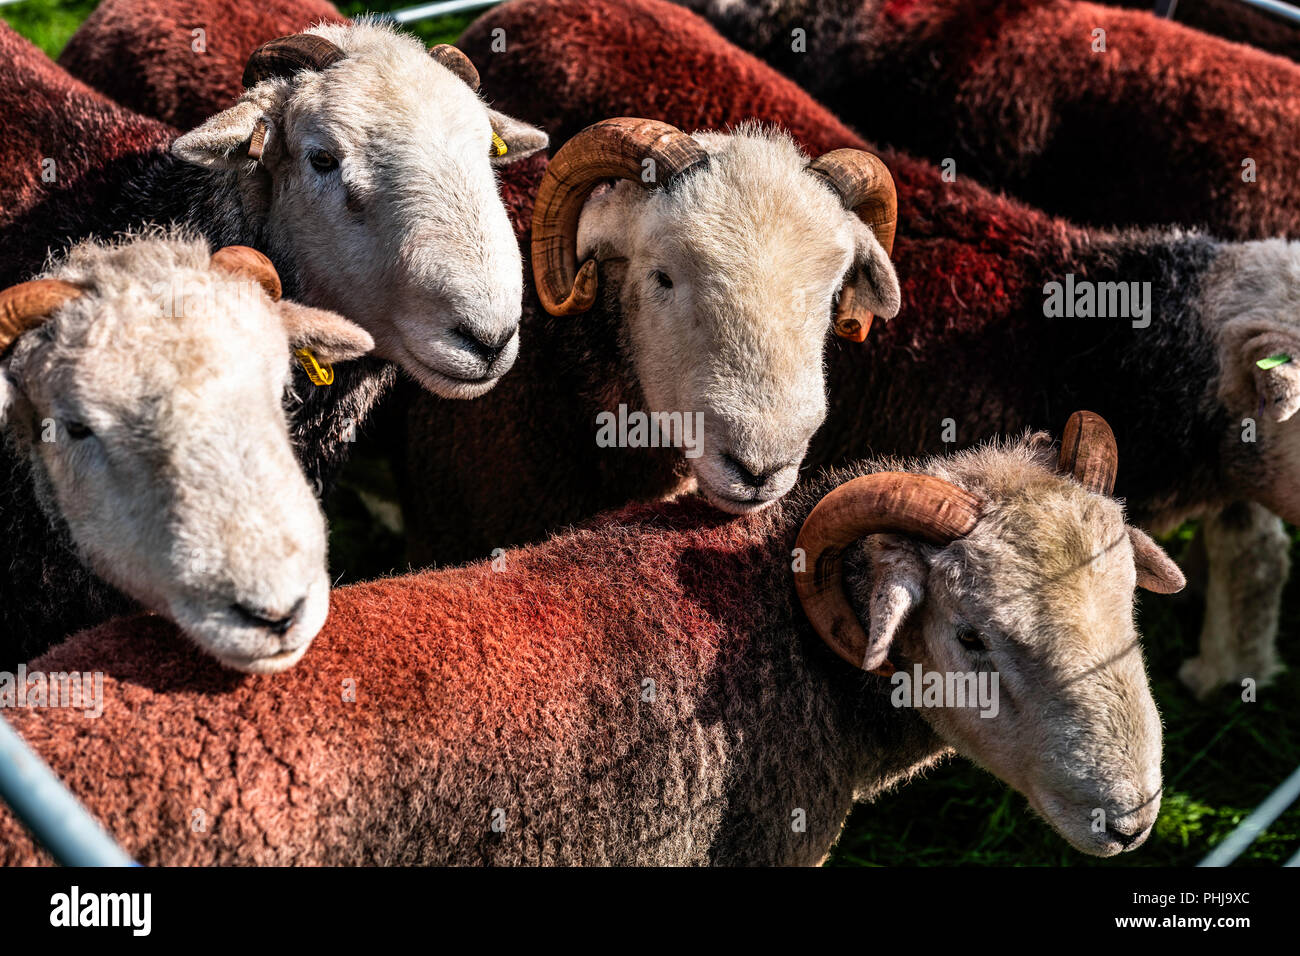 Ennerdale, Whitehaven, Cumbria, UK. 29th August 2018. The community of Ennerdale Water in the Lake District hold their annual agricultural show. Embed - Stock Image